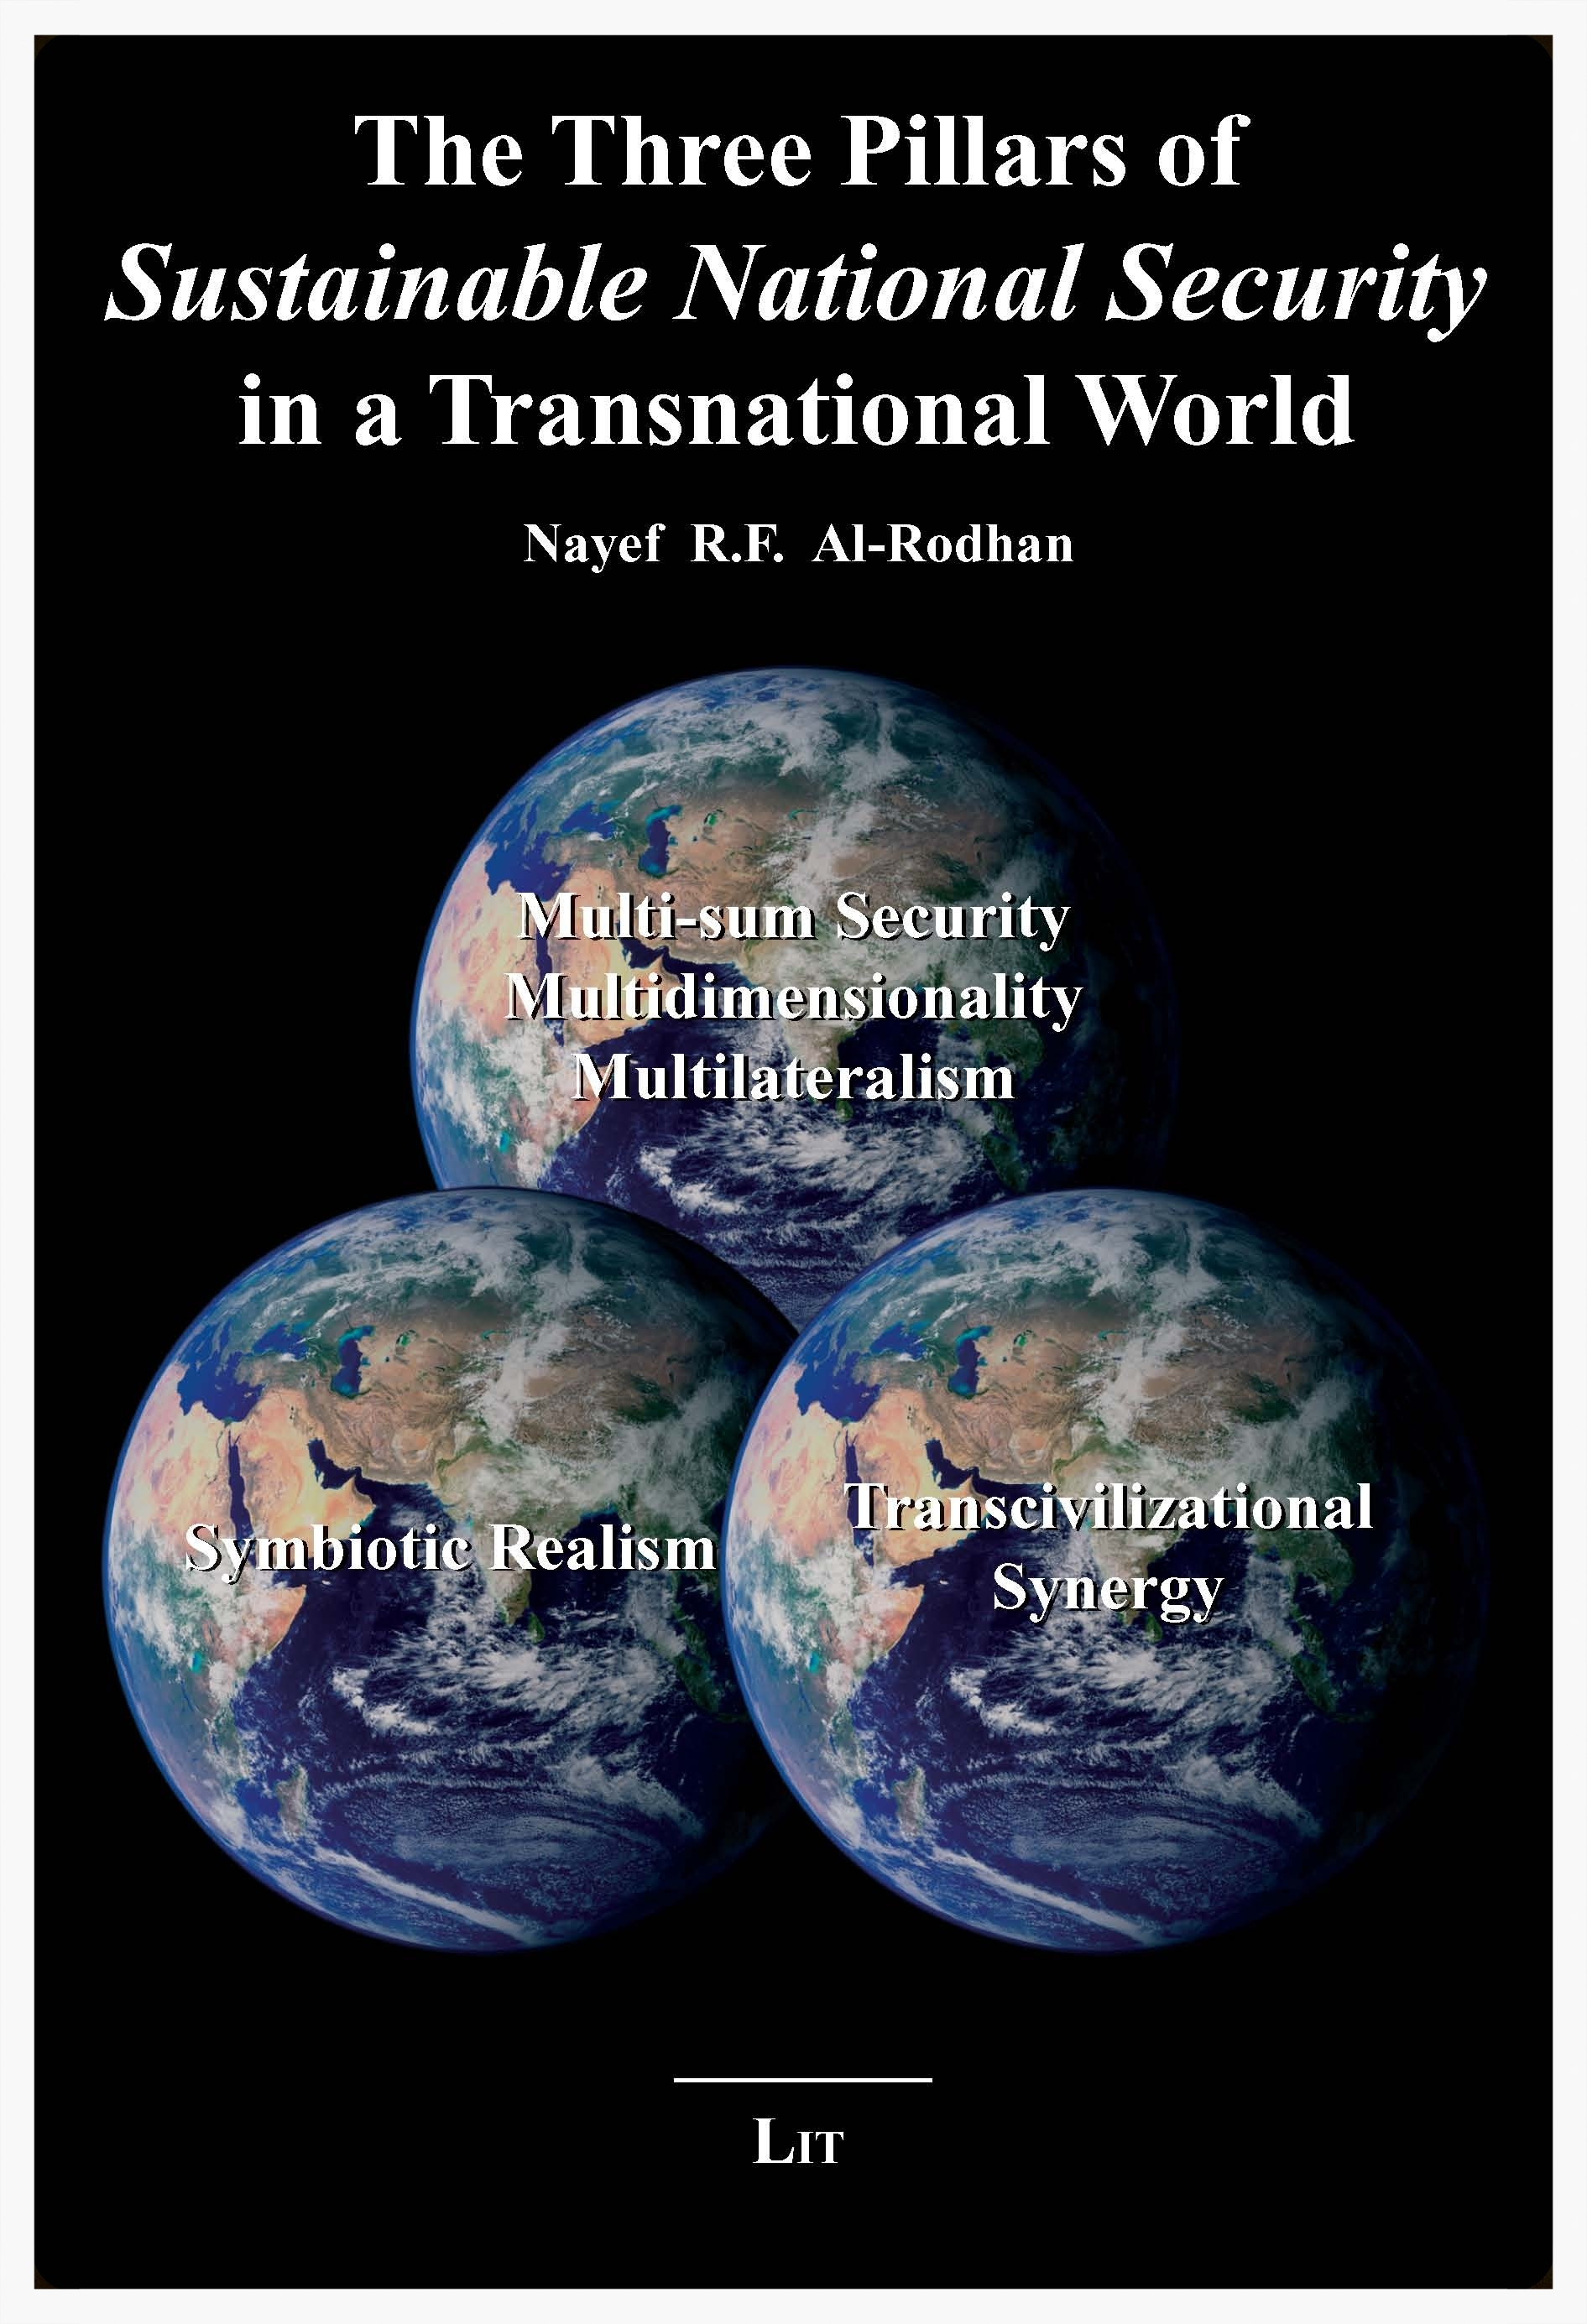 Copy of THE THREE PILLARS OF SUSTAINABLE NATIONAL SECURITY IN A TRANSNATIONAL WORLD